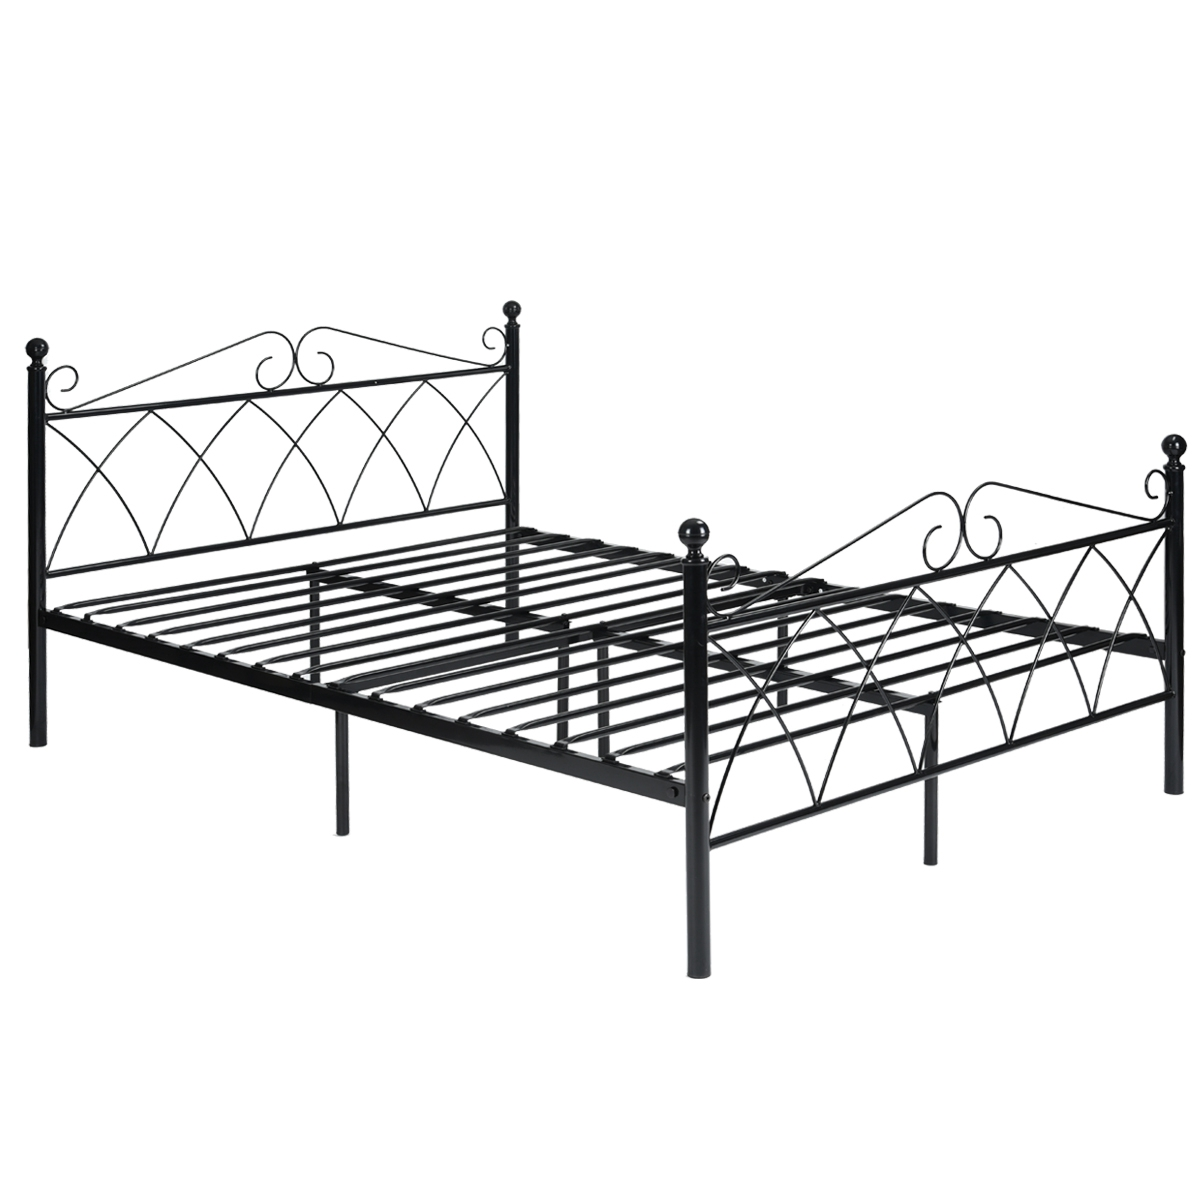 Medium size of bed framesfull bed frame full size bed for Full size bed frame